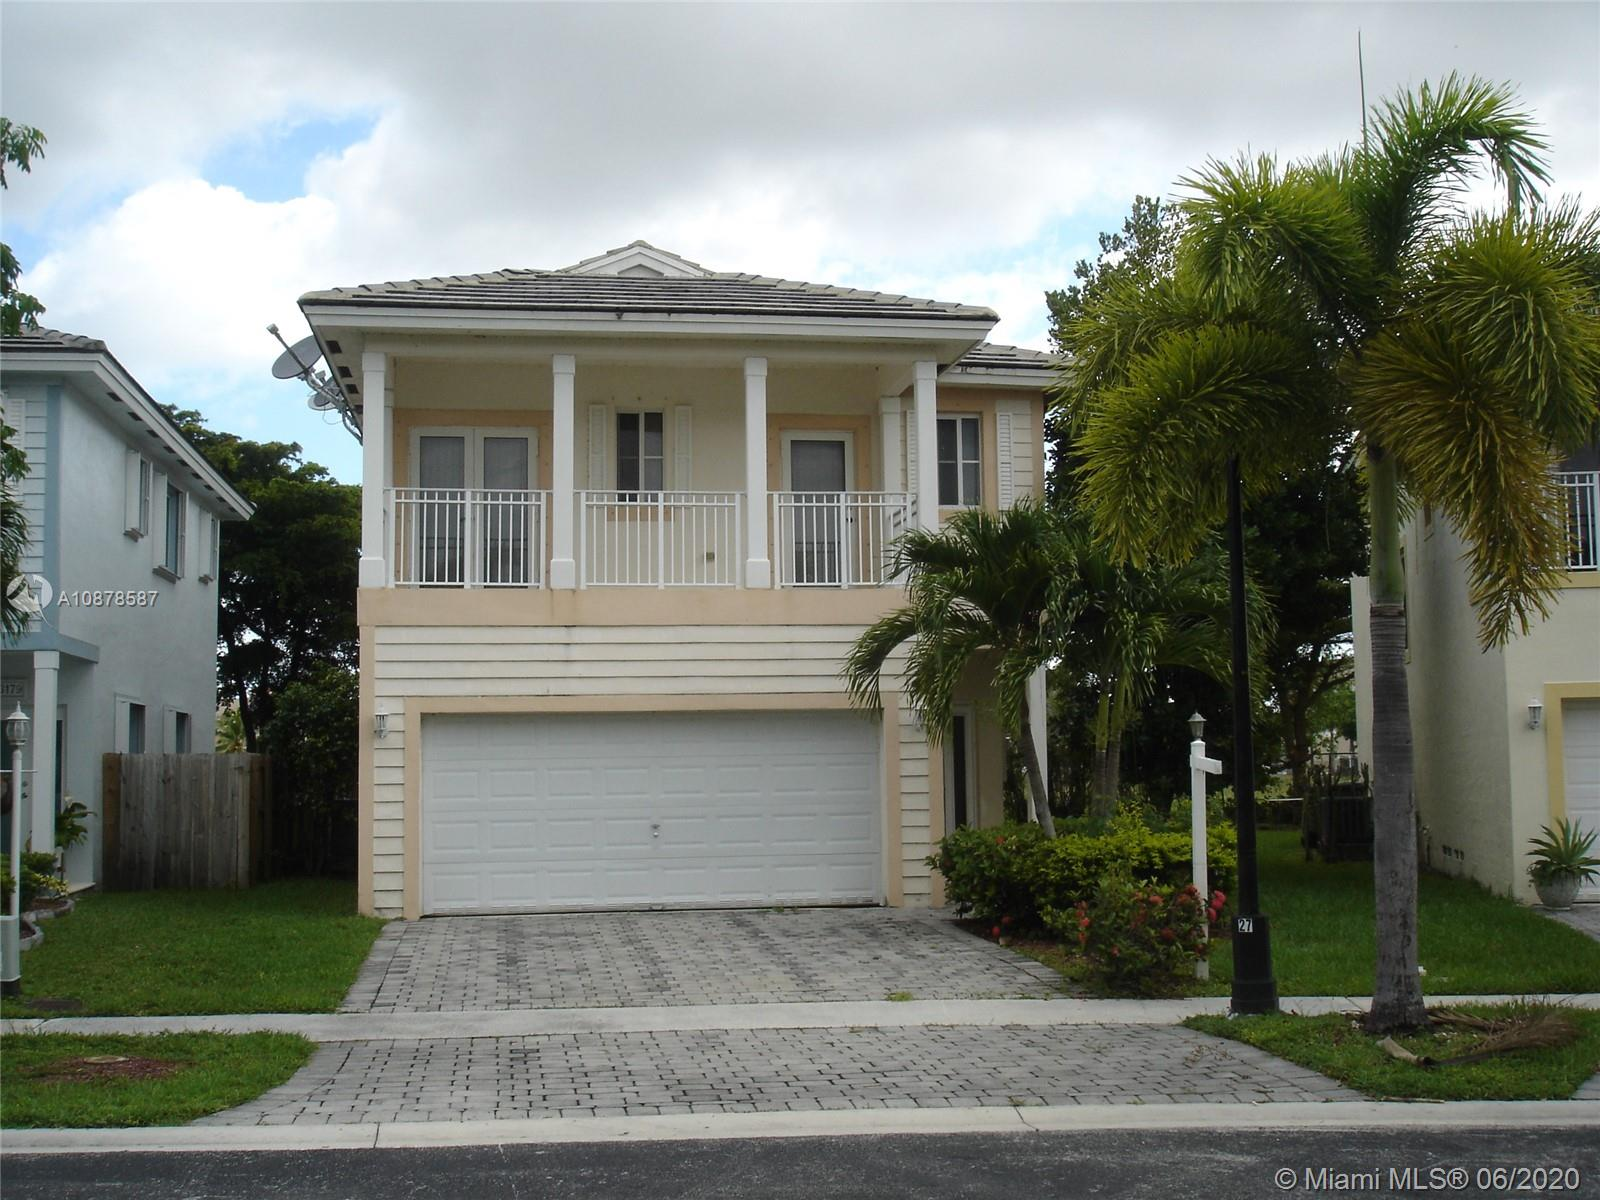 3185 NE 4th St Property Photo - Homestead, FL real estate listing